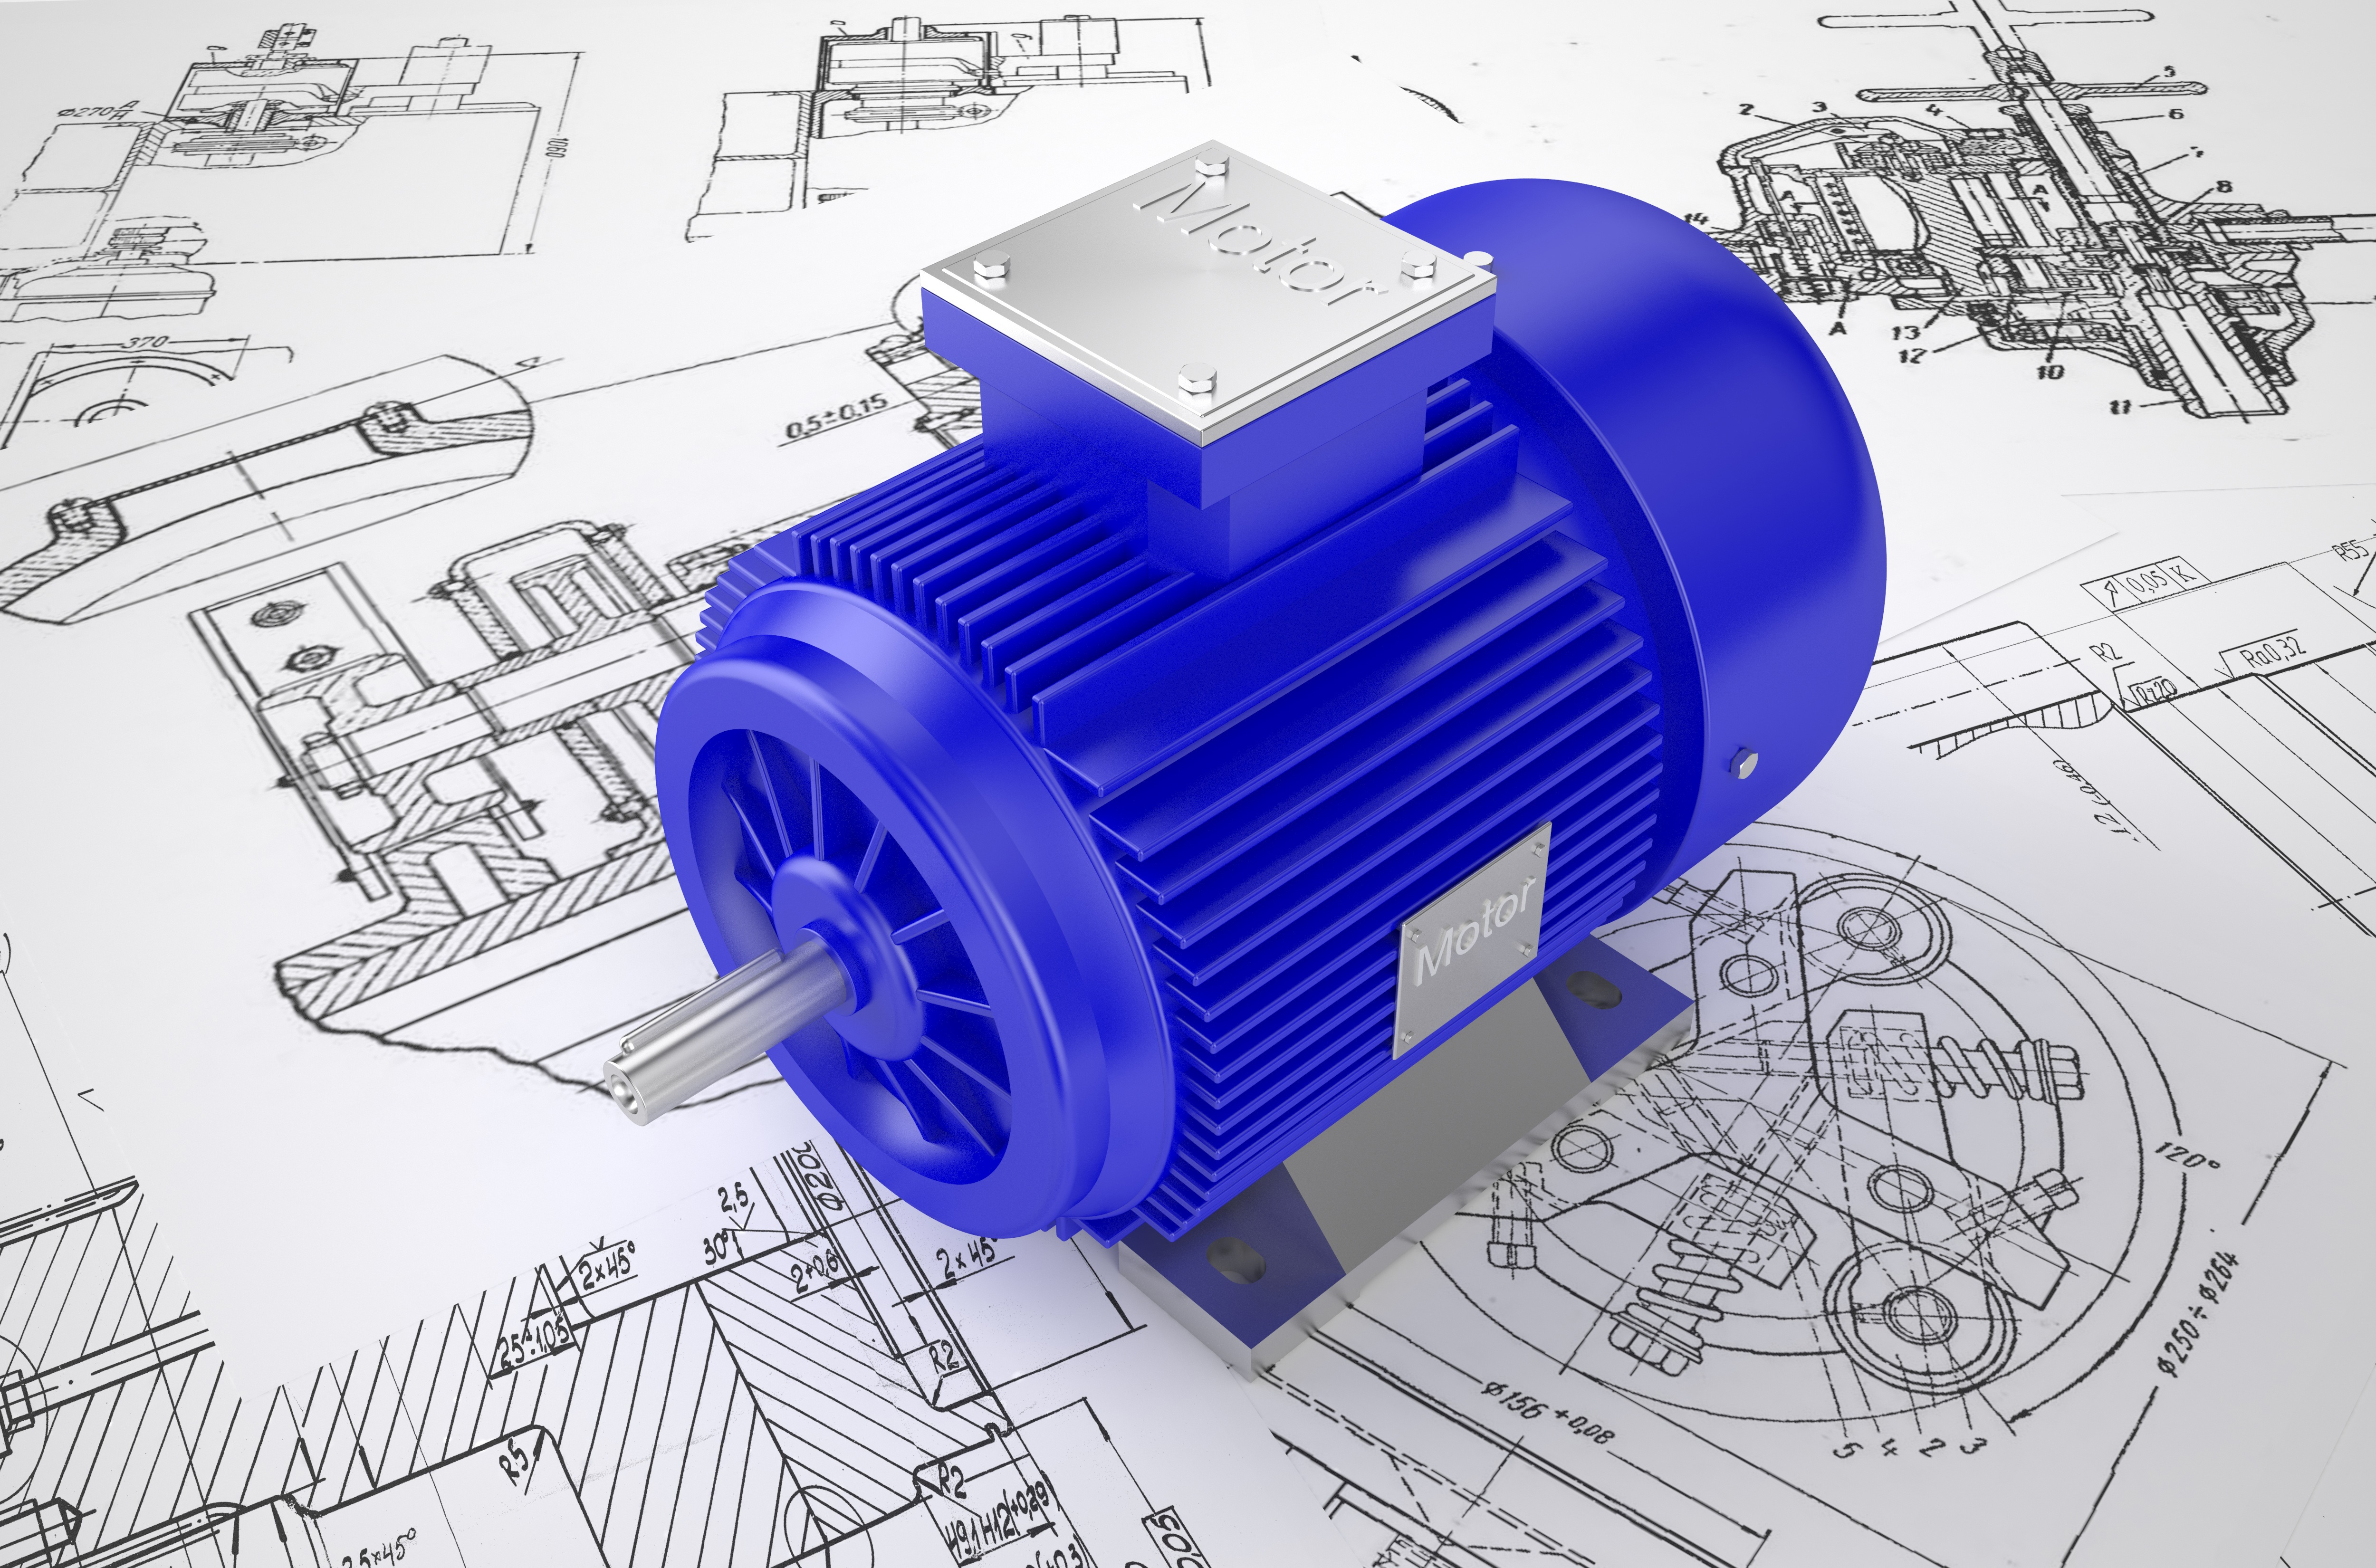 Industrial blue electric motors on the drawing